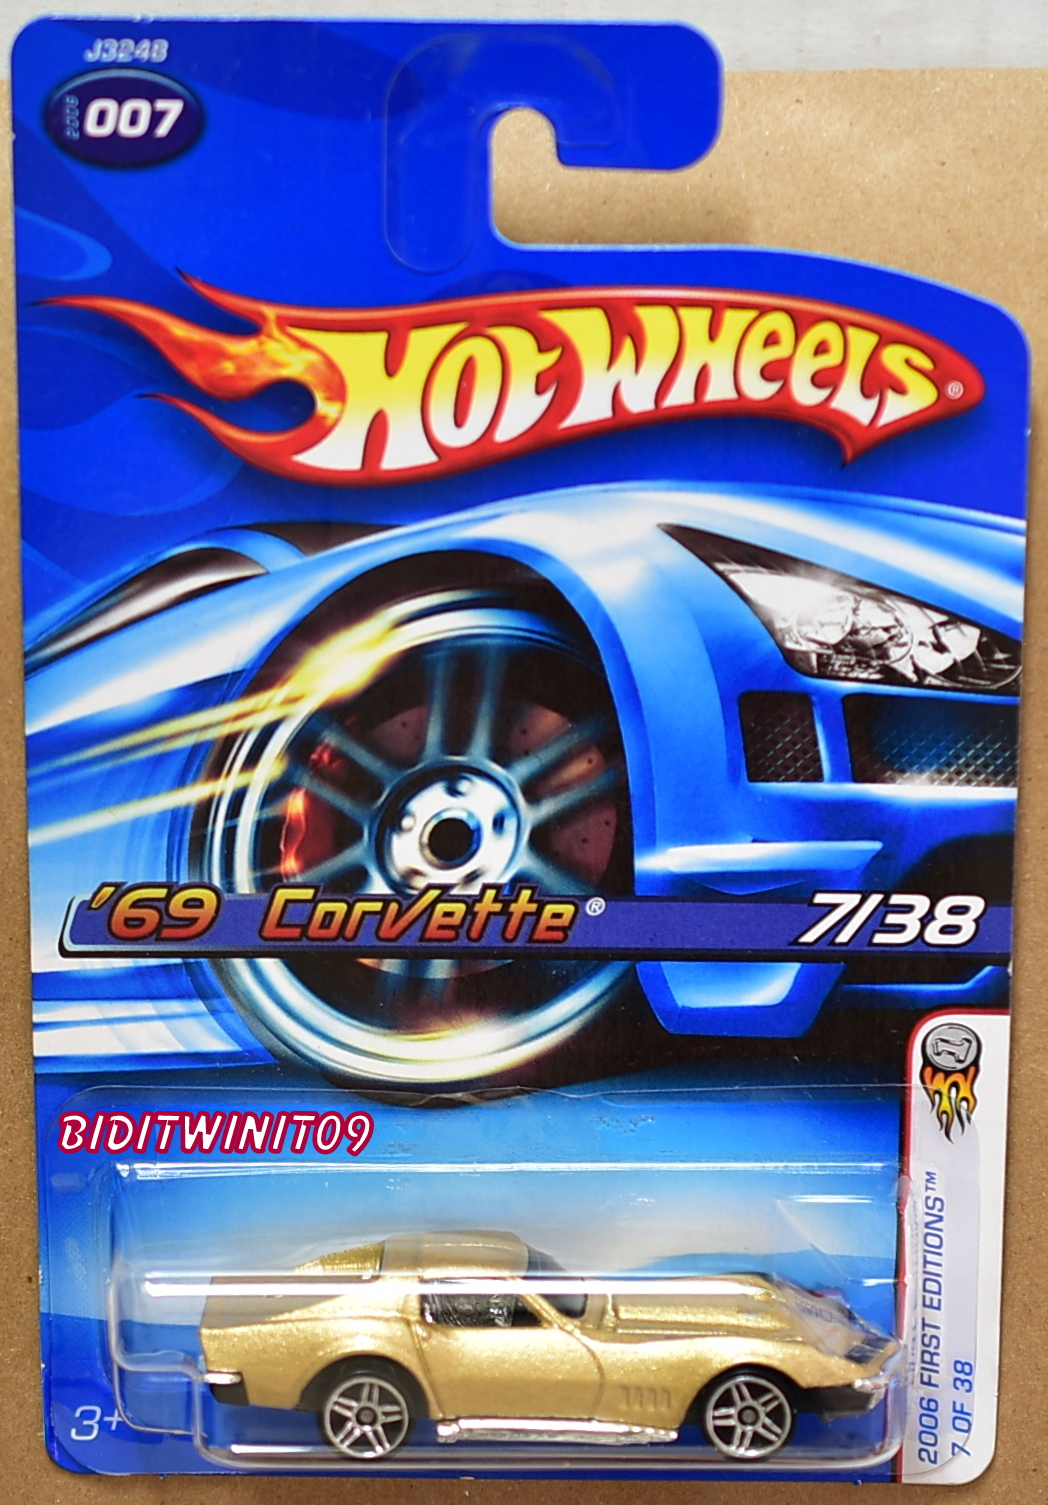 HOT WHEELS 2006 FIRST EDITIONS '69 CORVETTE #007 GOLD ALL SMALL WHEELS ERROR E+